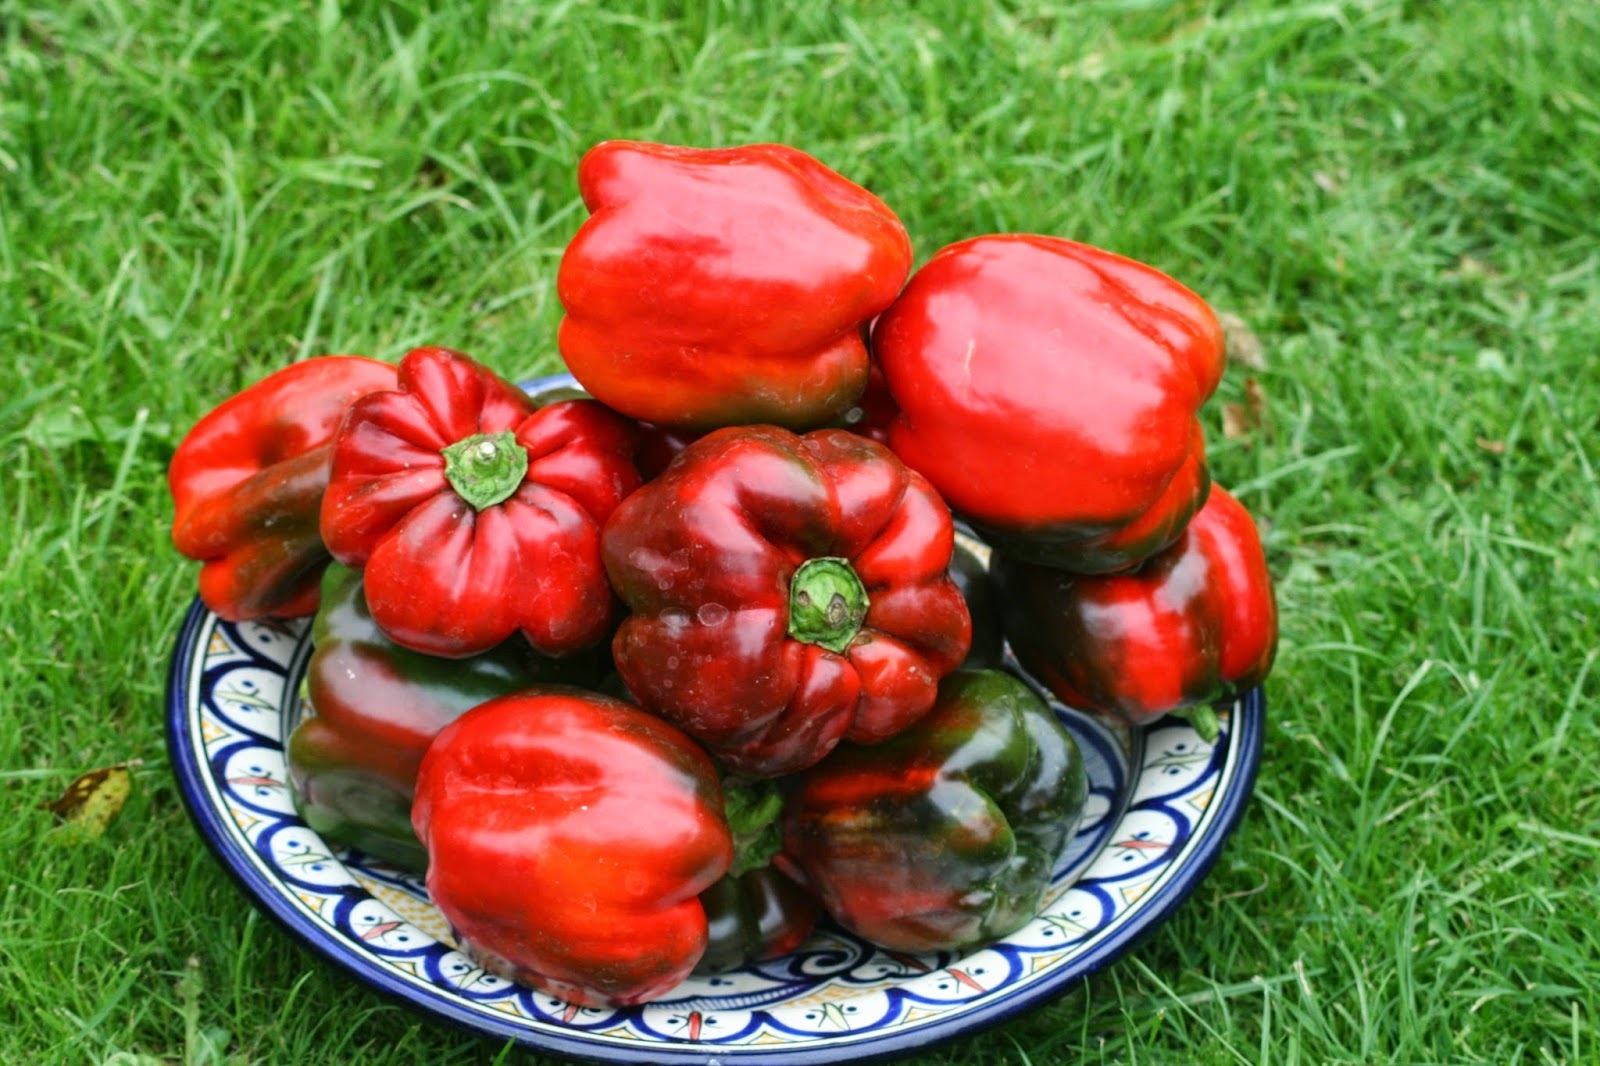 Sweet Peppers - dealing with a glut of sweet red peppers